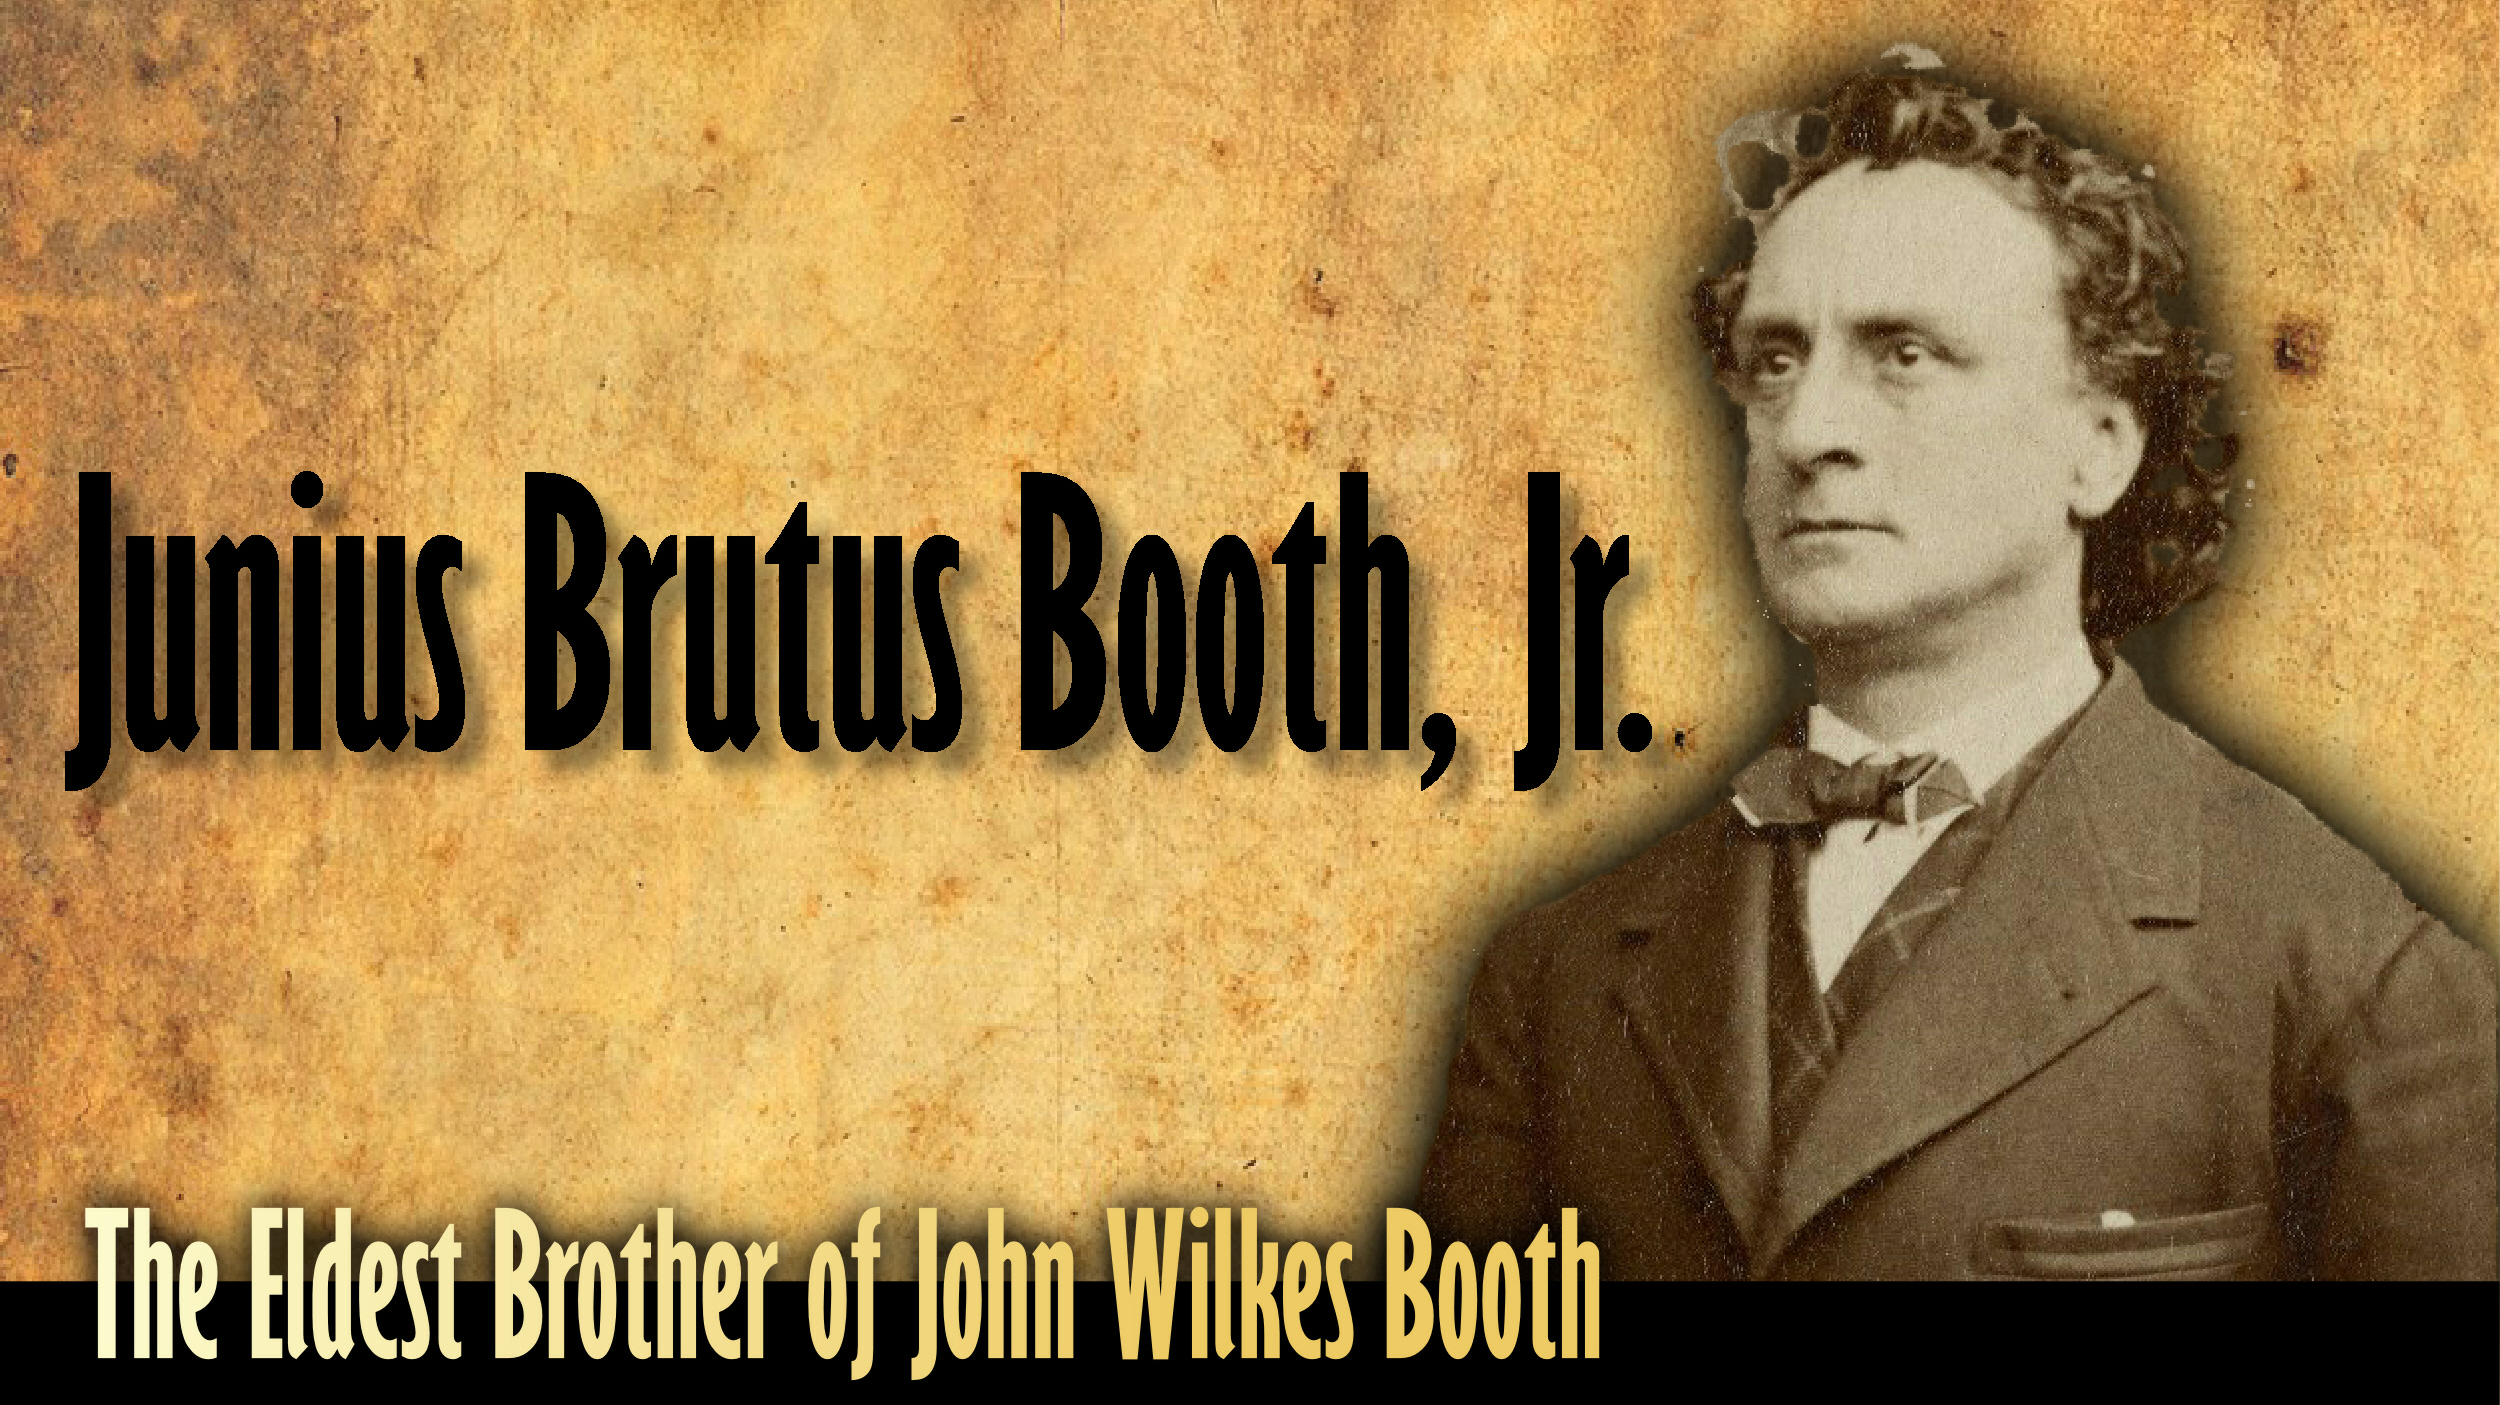 Junius Brutus Booth, Jr: The Eldest Brother of John Wilkes Booth